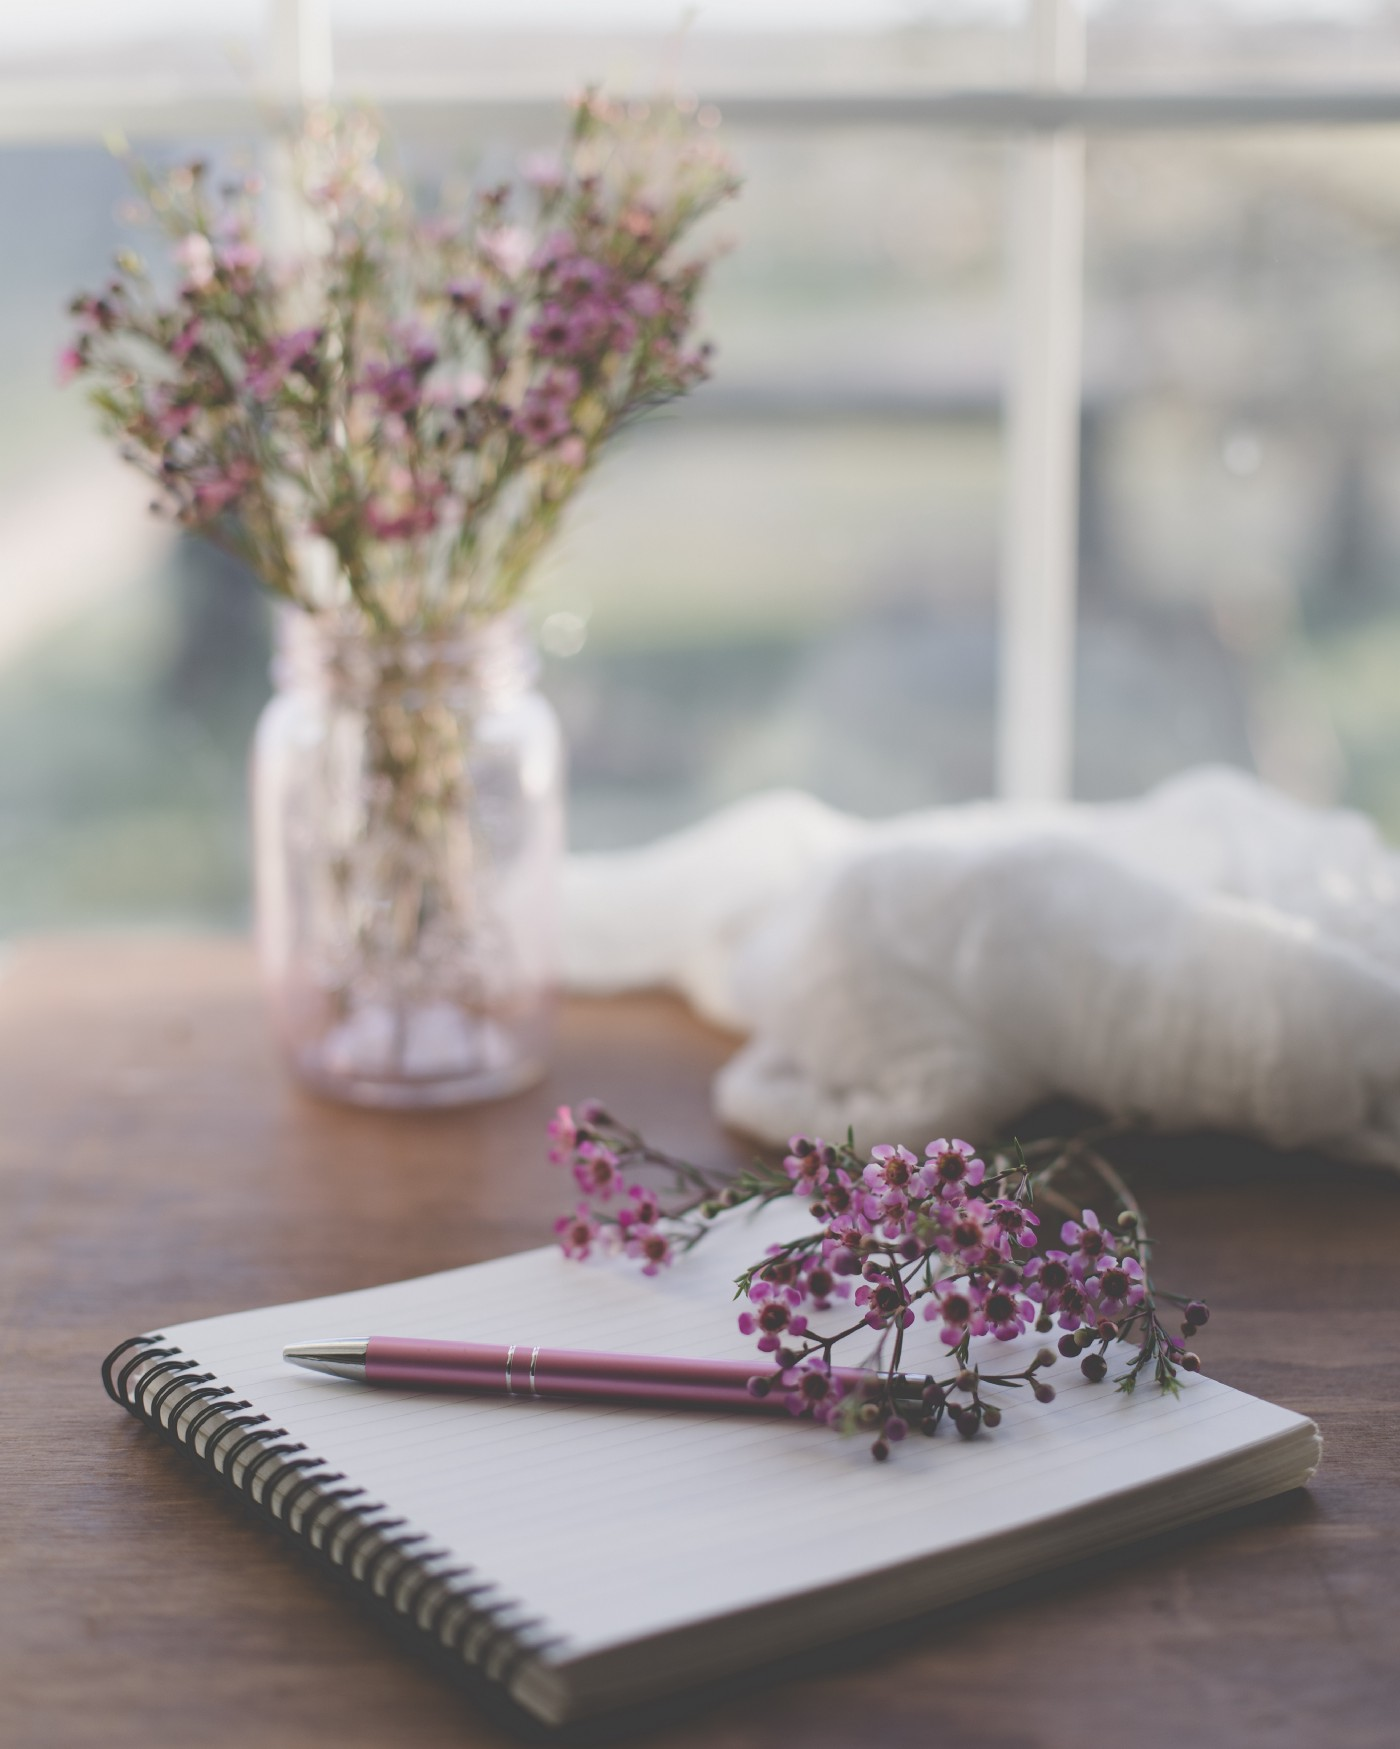 wire bound notebook open on a table with pink flowers on it and pink flowers in a vase